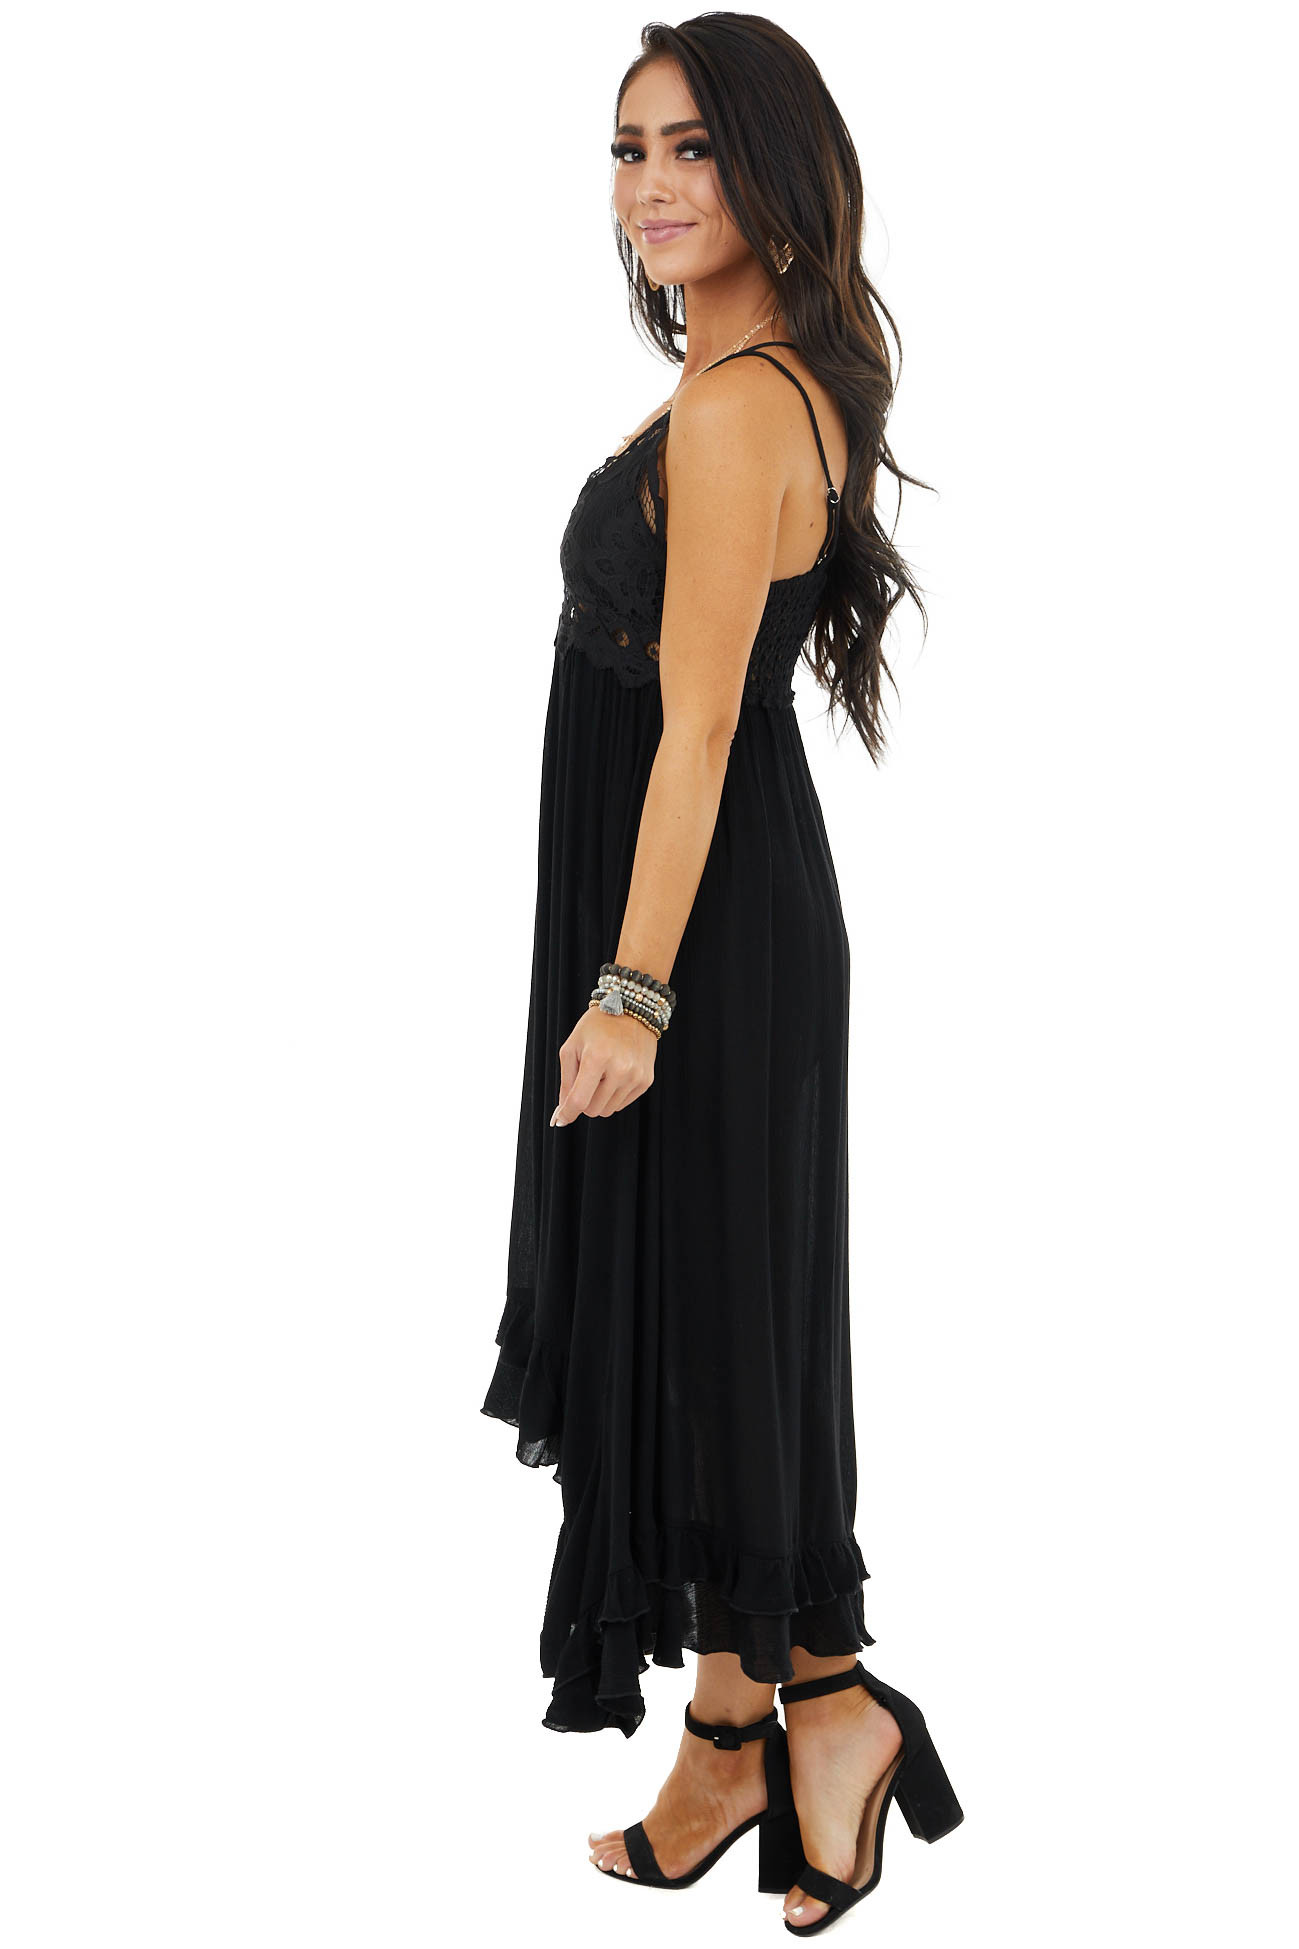 Black Midi Dress with Lace Bust and Peekaboo Details